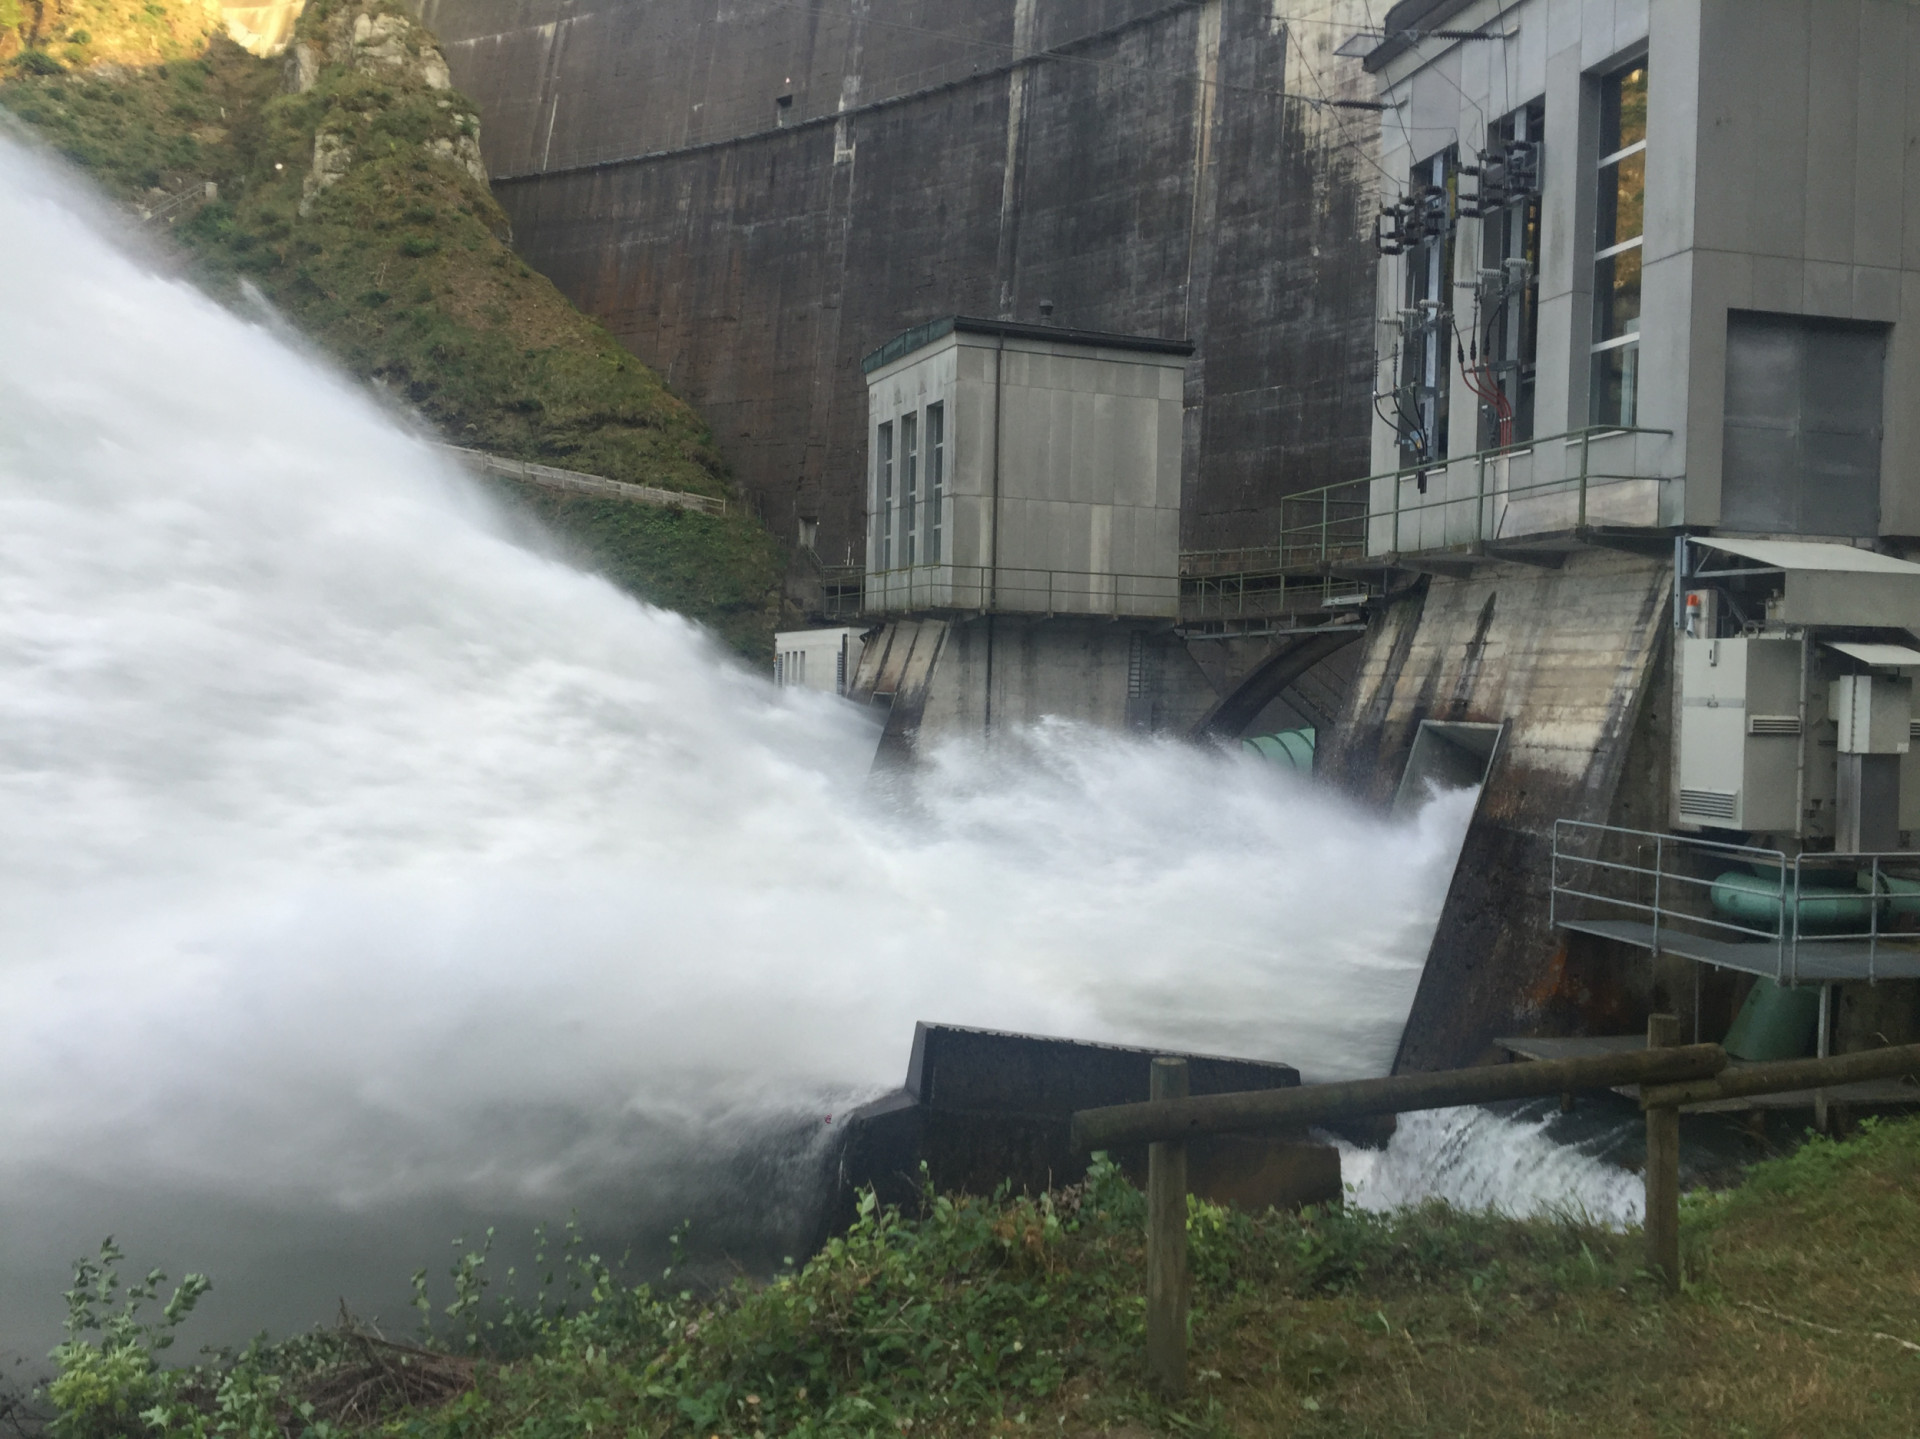 At the foot of the Rossens dam, the water shoots out of the locks.